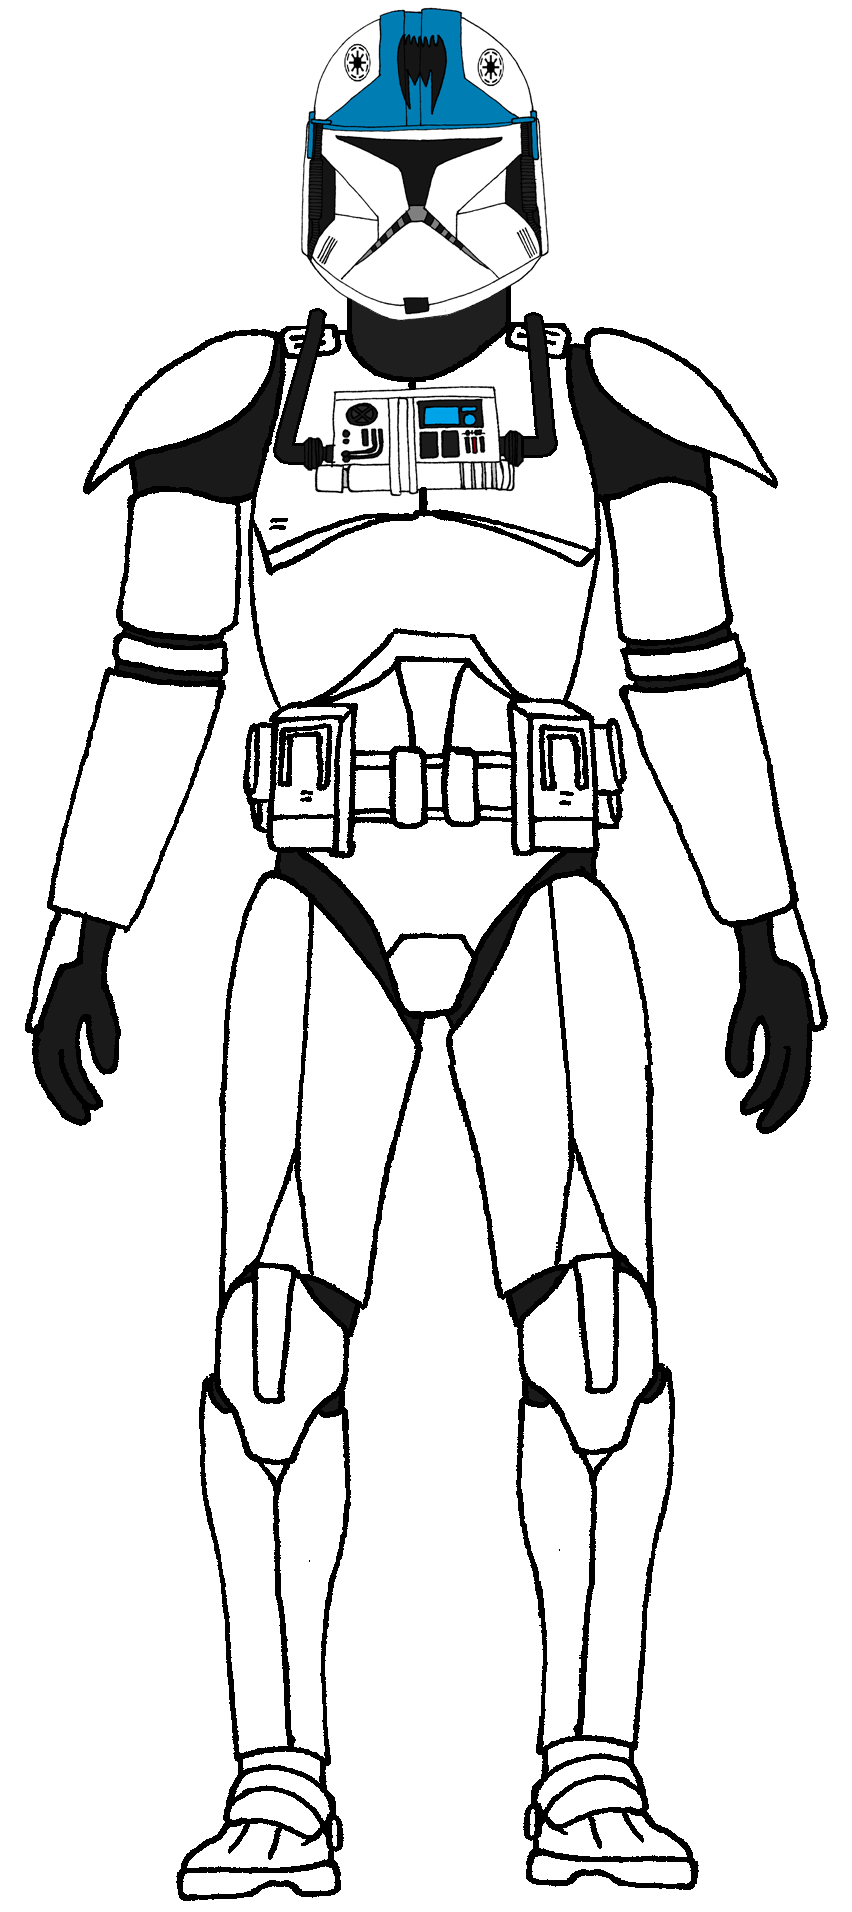 Clone Trooper Pilot Arc Trooper Pilot Star Wars Clone Wars Star Wars Drawings Star Wars Trooper